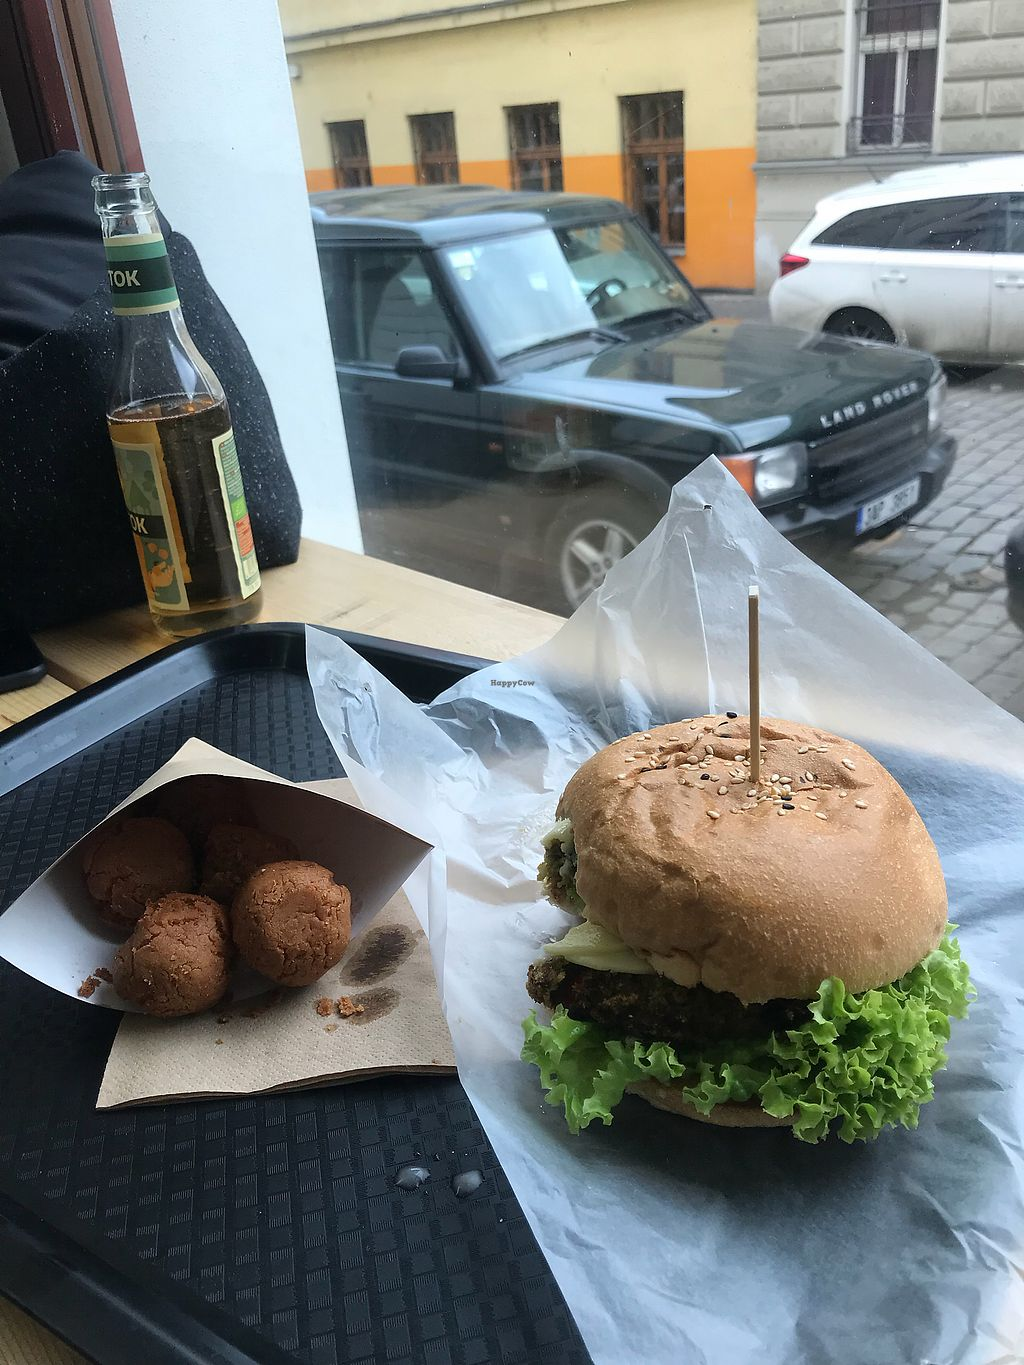 """Photo of Chutnej Fast Food  by <a href=""""/members/profile/SzapuDominika"""">SzapuDominika</a> <br/>Broccoli burger with chickpea """"balls"""" <br/> March 12, 2018  - <a href='/contact/abuse/image/84697/369607'>Report</a>"""